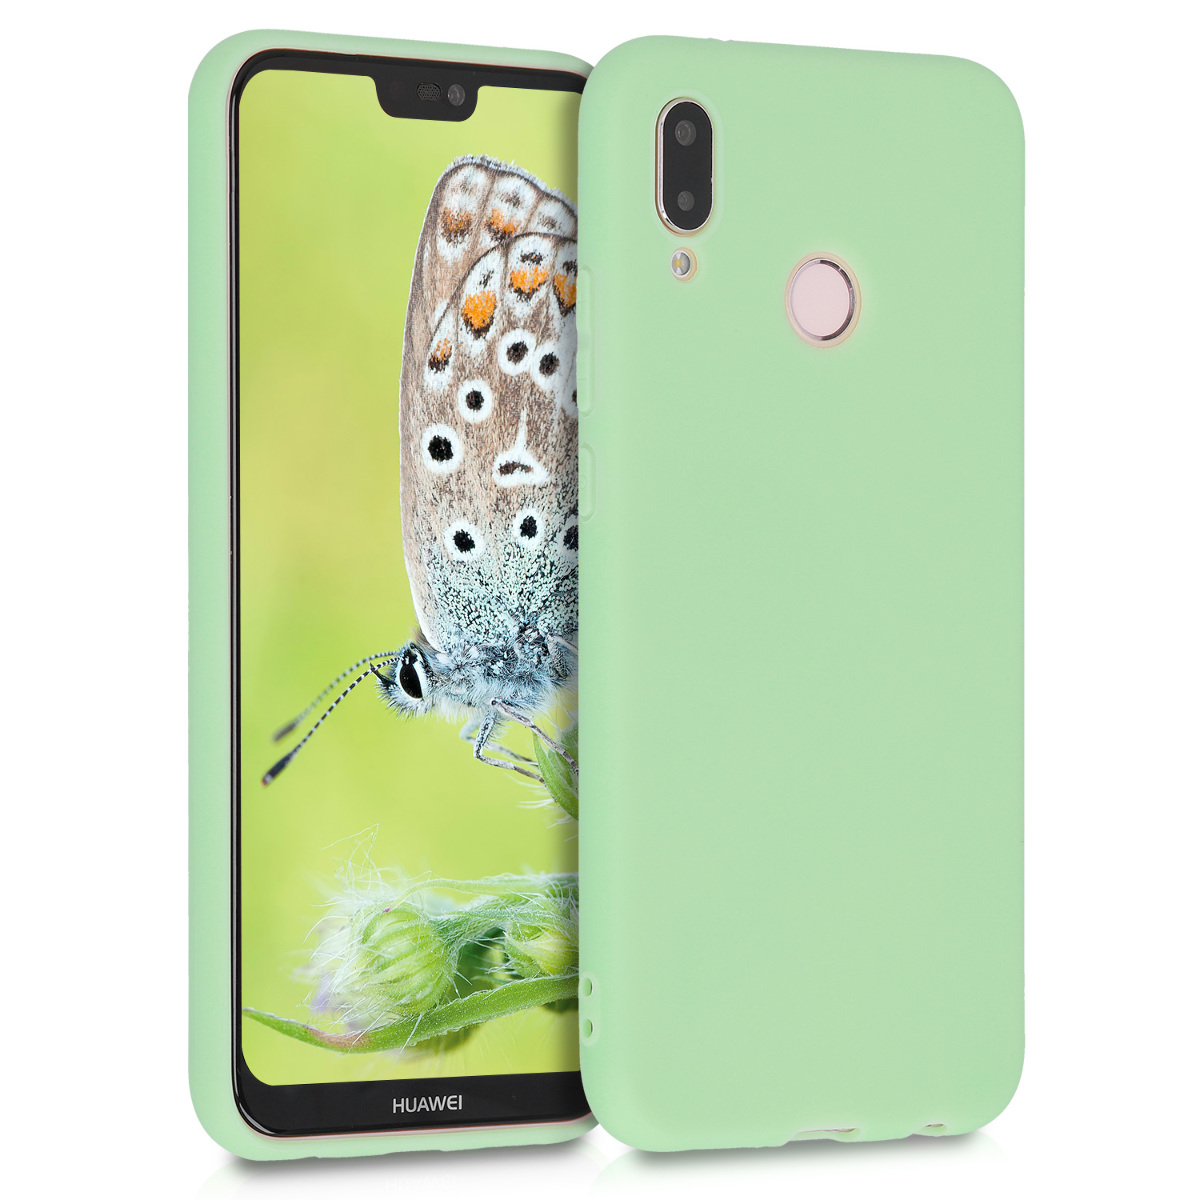 KW Θήκη Σιλικόνης Huawei P20 Lite - Soft Flexible Rubber Protective Cover - Mint Matte (44358.50)